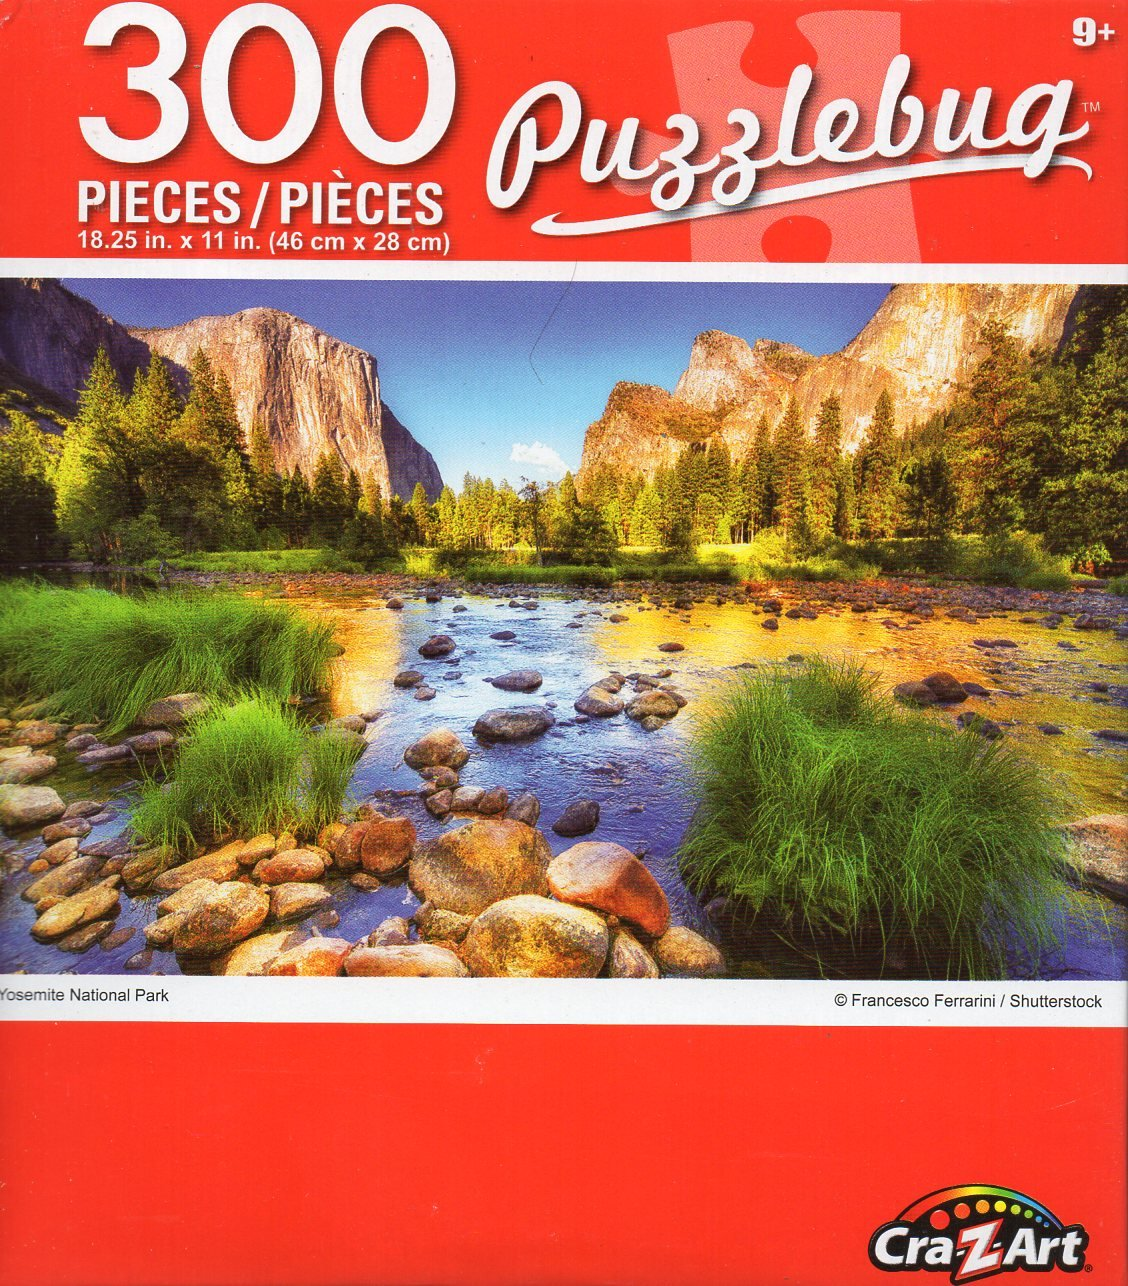 Cra-Z-Art Puzzlebug Yosemite National Park - 300 Piece Jigsaw Puzzle